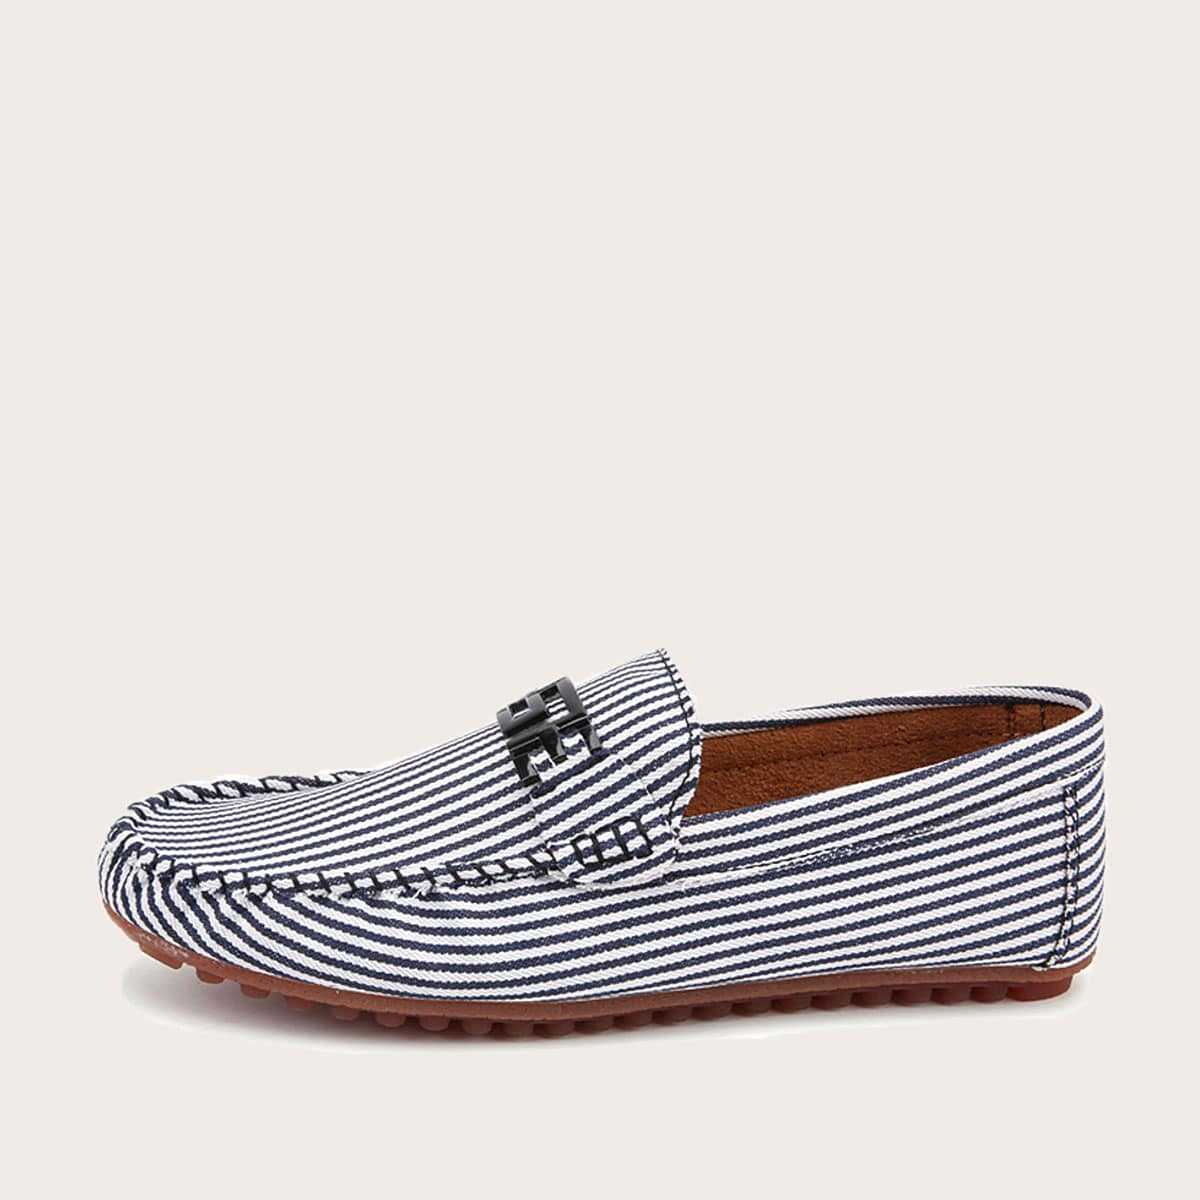 Guys Striped Slip On Loafers in Black and White by ROMWE on GOOFASH